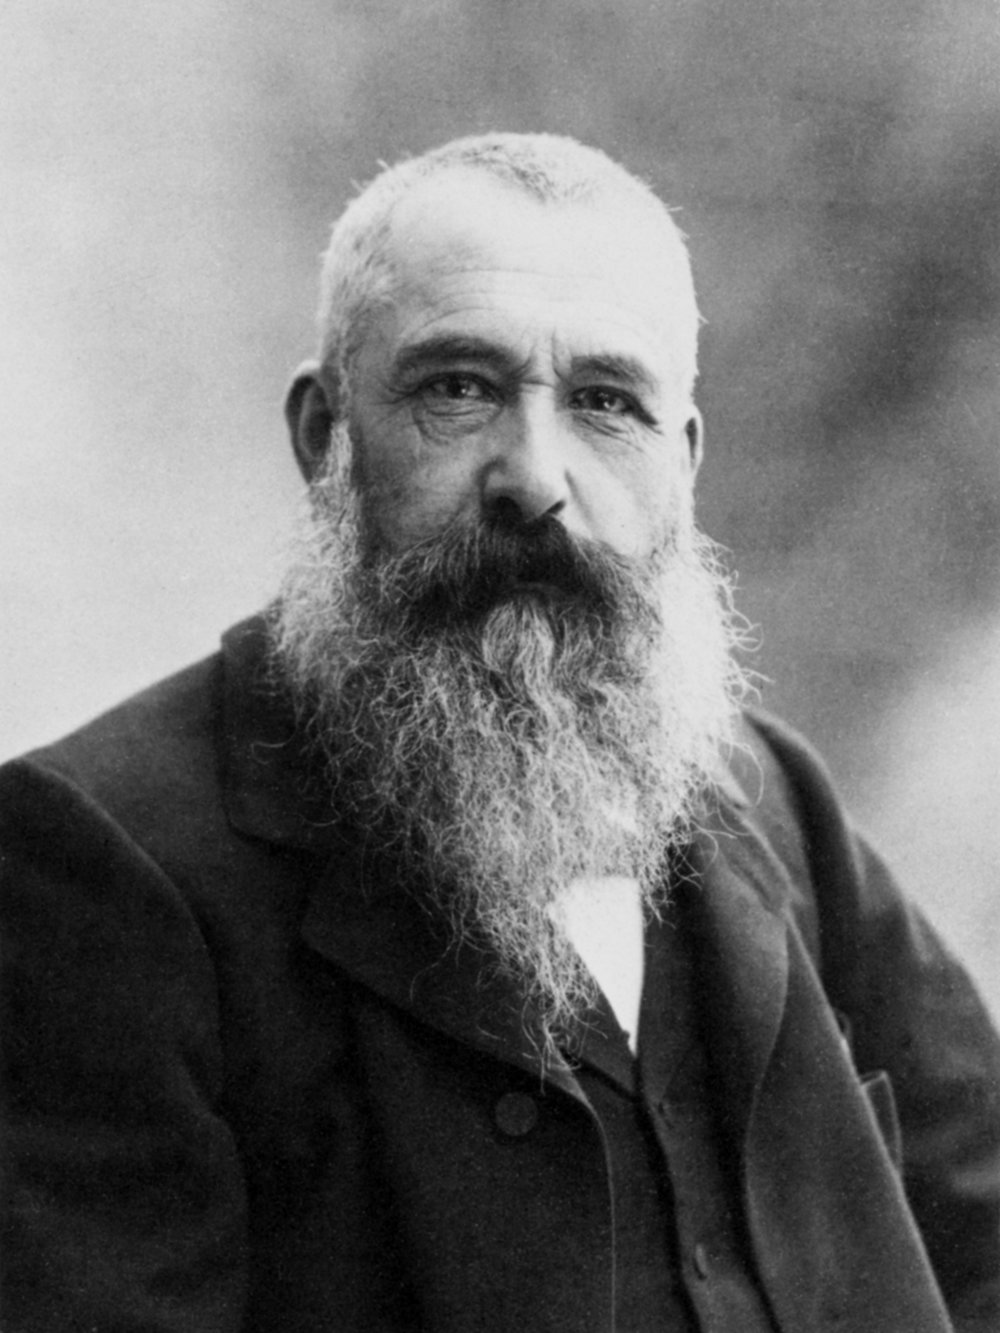 Claude Monet (1840 - 1936)    Claude Monet  was a French painter who initiated and advocated for the Impressionist style. Monet would stick with the same motif in a series of paintings. As the light on the subject matter changed so would his canvas.   Monet's first success as an artist happened when he was 15-years-old. He sold numerous caricatures which were carefully observed and well drawn. In addition, he sketched sailing ships in great detail. Monet's aunt, Marie-Jeanne Lecadre, was an amateur painter who suggested to Monet that he should study with a local artist. However, his life as a painter didn't begin until he was befriended by Eugene Boudin, who introduced Monet to painting outside.      Before artists went outside to paint the surrounding landscape, it was done so in a studio and from memory. Monet went outside to paint the landscape around him.